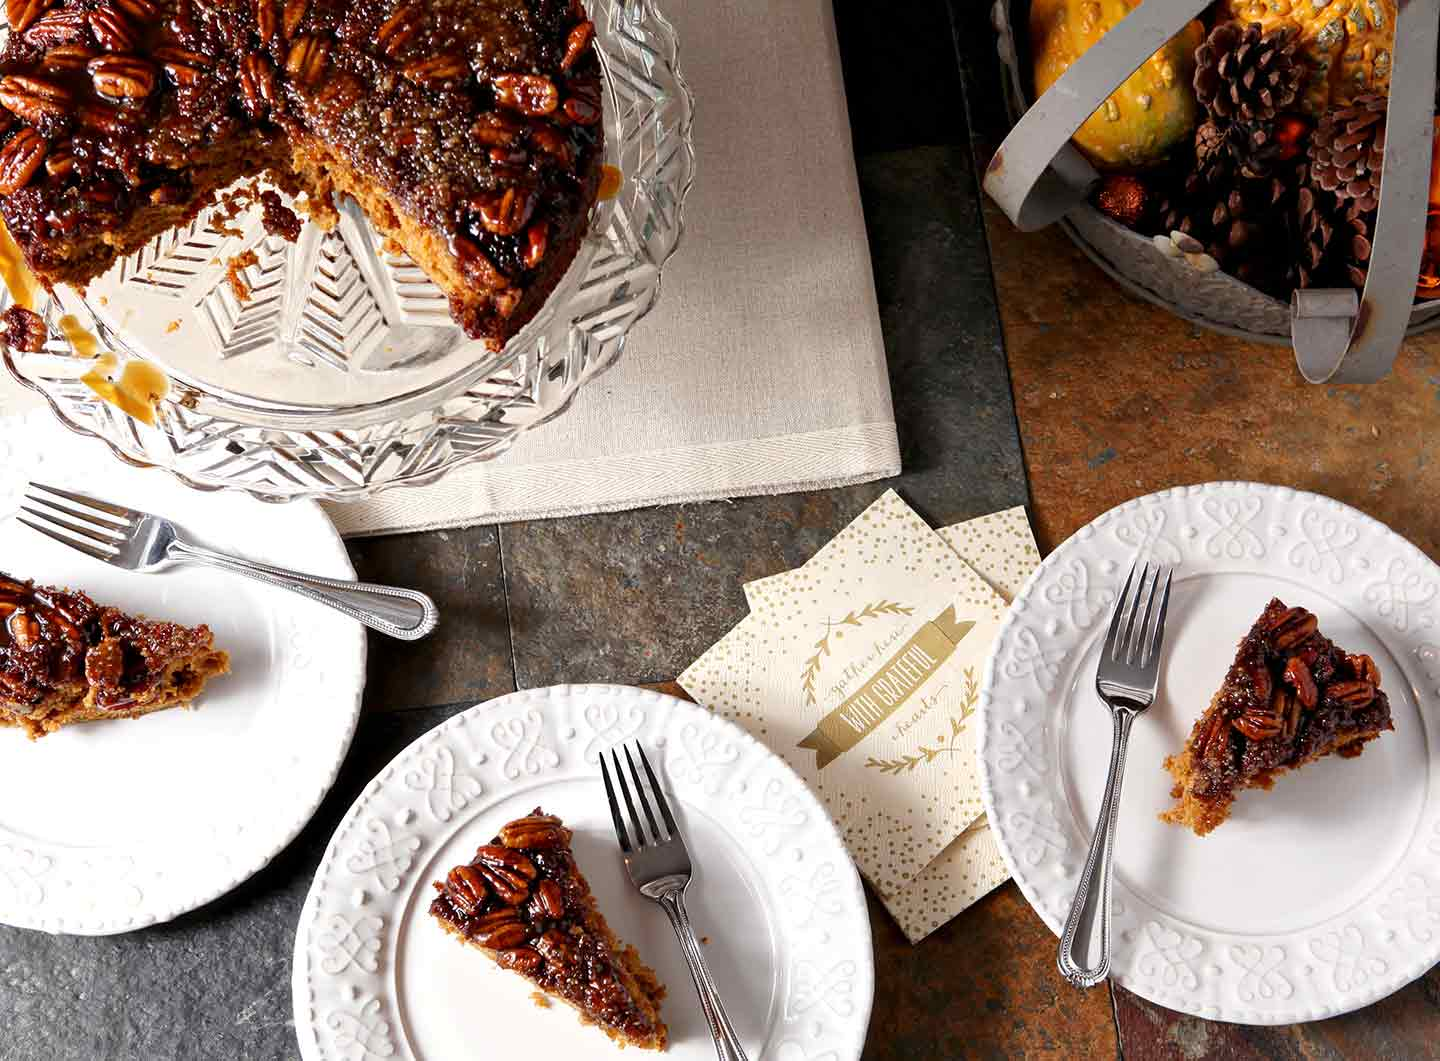 Three slices of Praline Pumpkin Upside Down Cake are served on a dark background